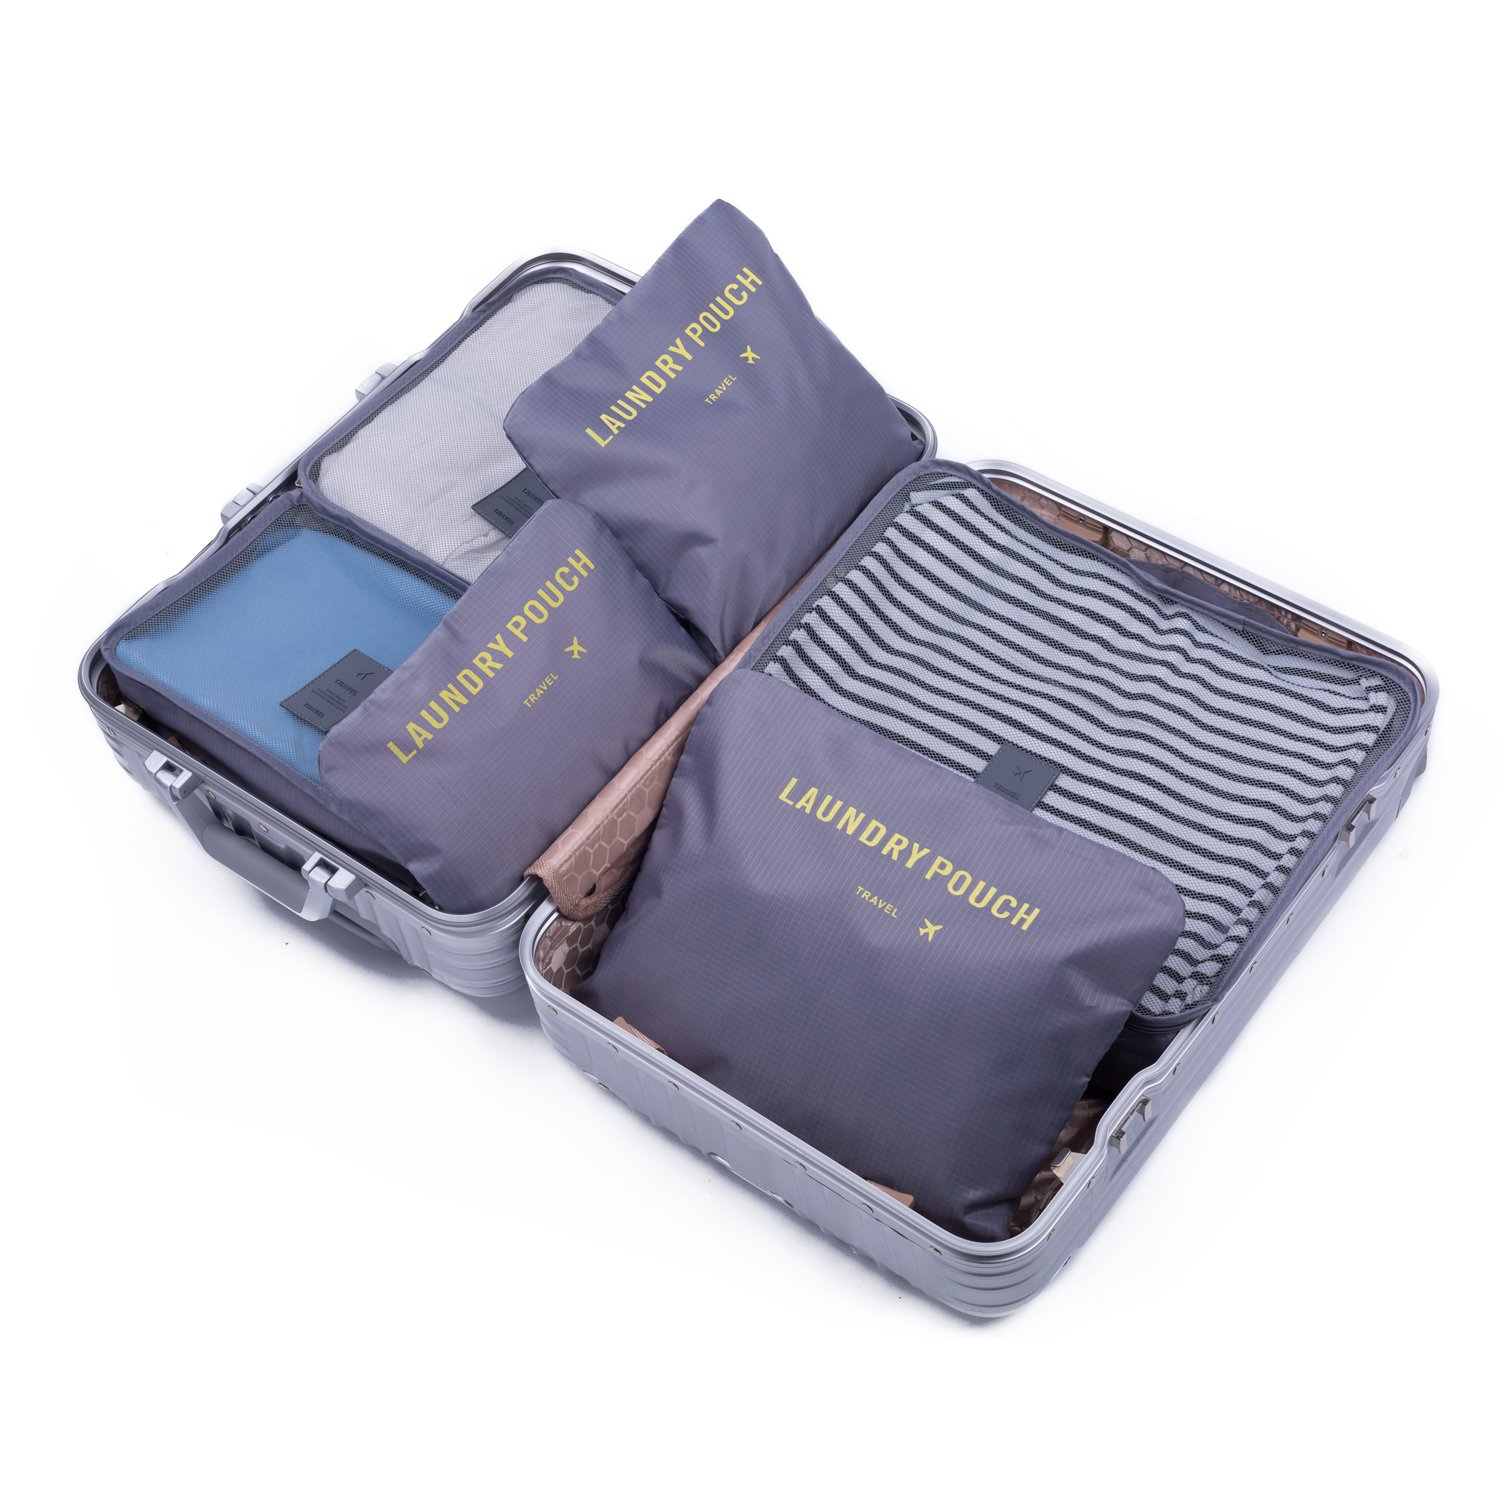 7 Sets Packing Cubes Travel Luggage Organizers- Different Extensible Compression Storage Accessories for Traveling, Camping and Weekender